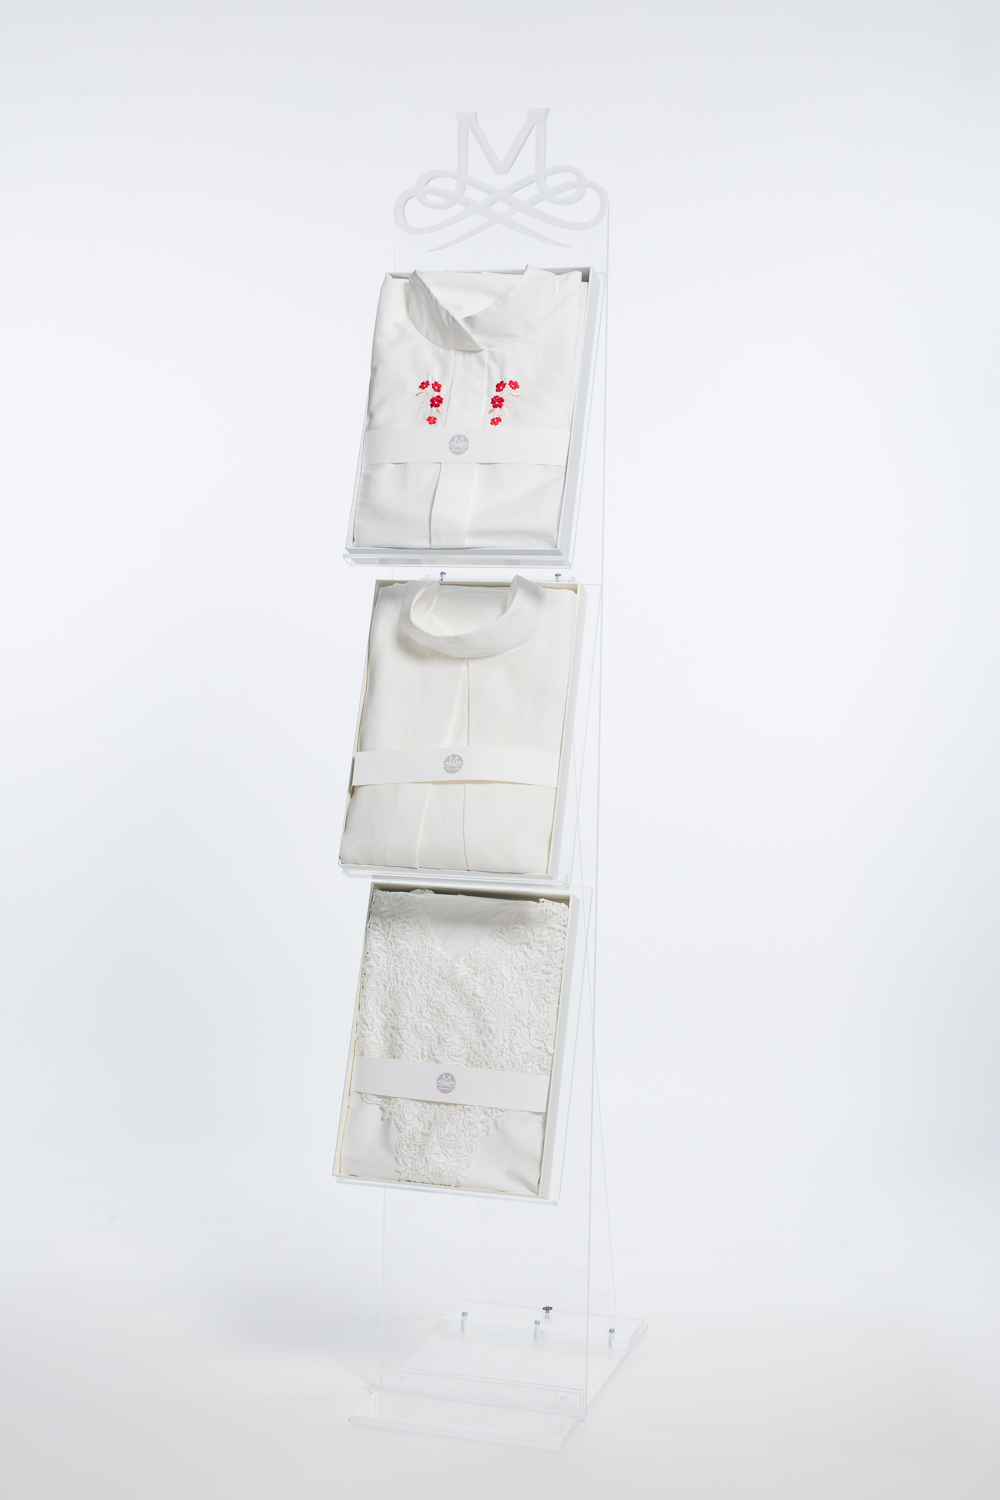 Floor display stand for 3 clothes